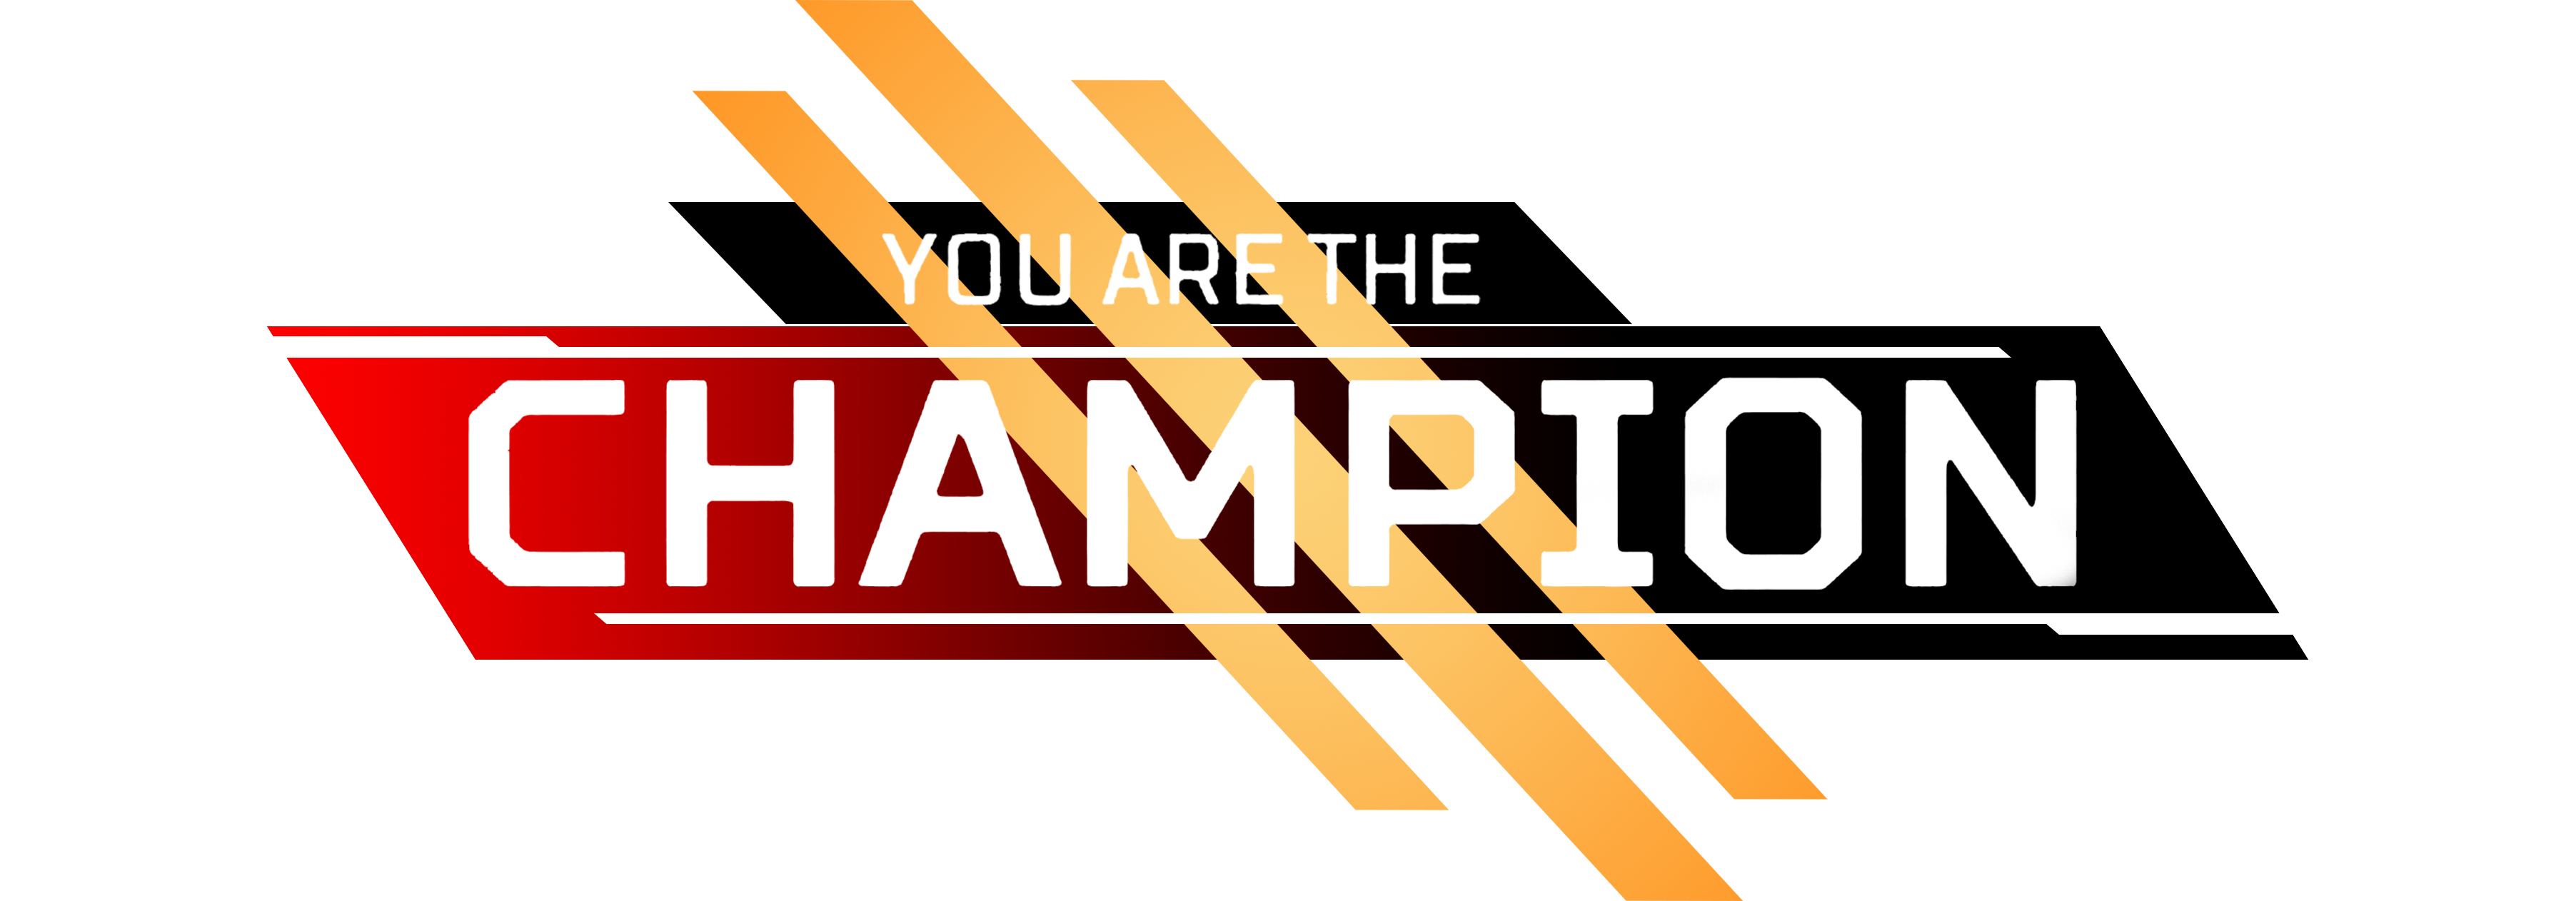 Apex Champion Sticker Apexlegends